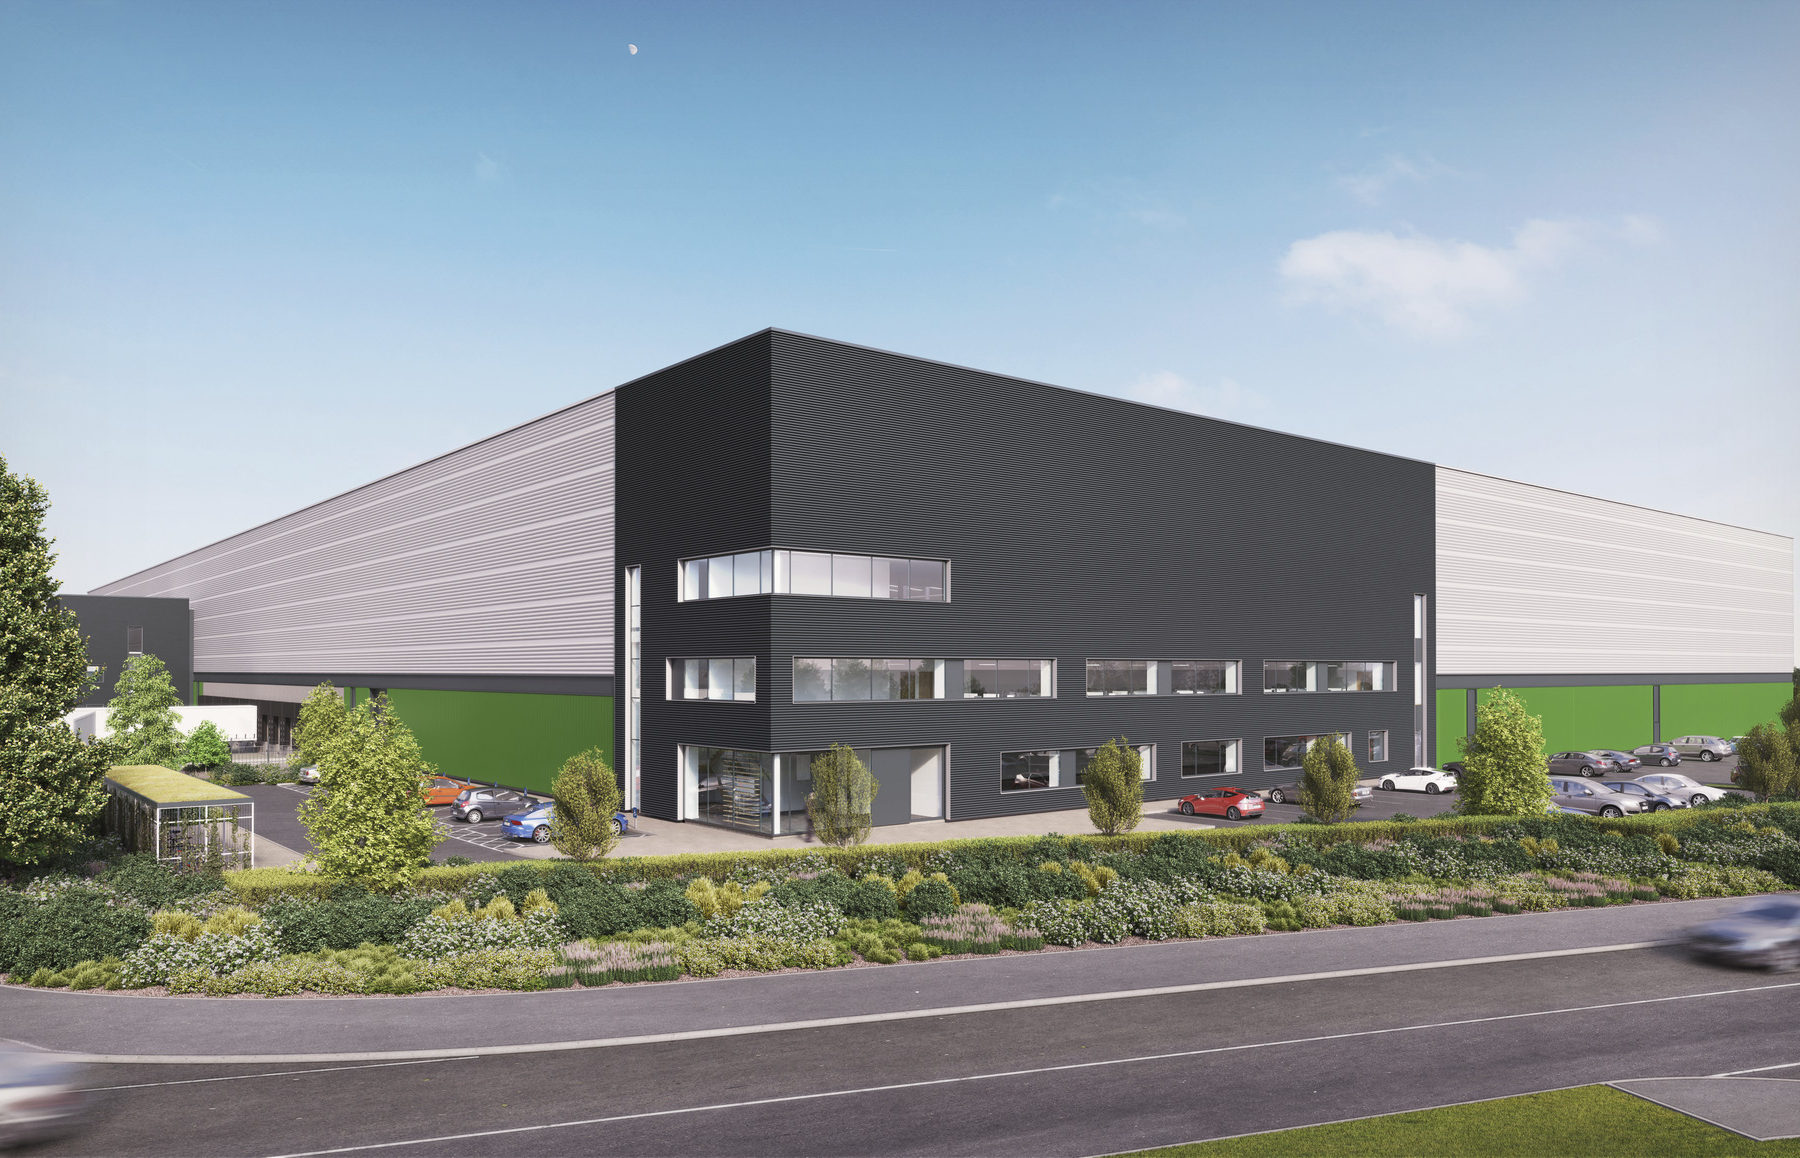 Chetwoods Sustainable Logistics Warehouse Baytree Dunstable